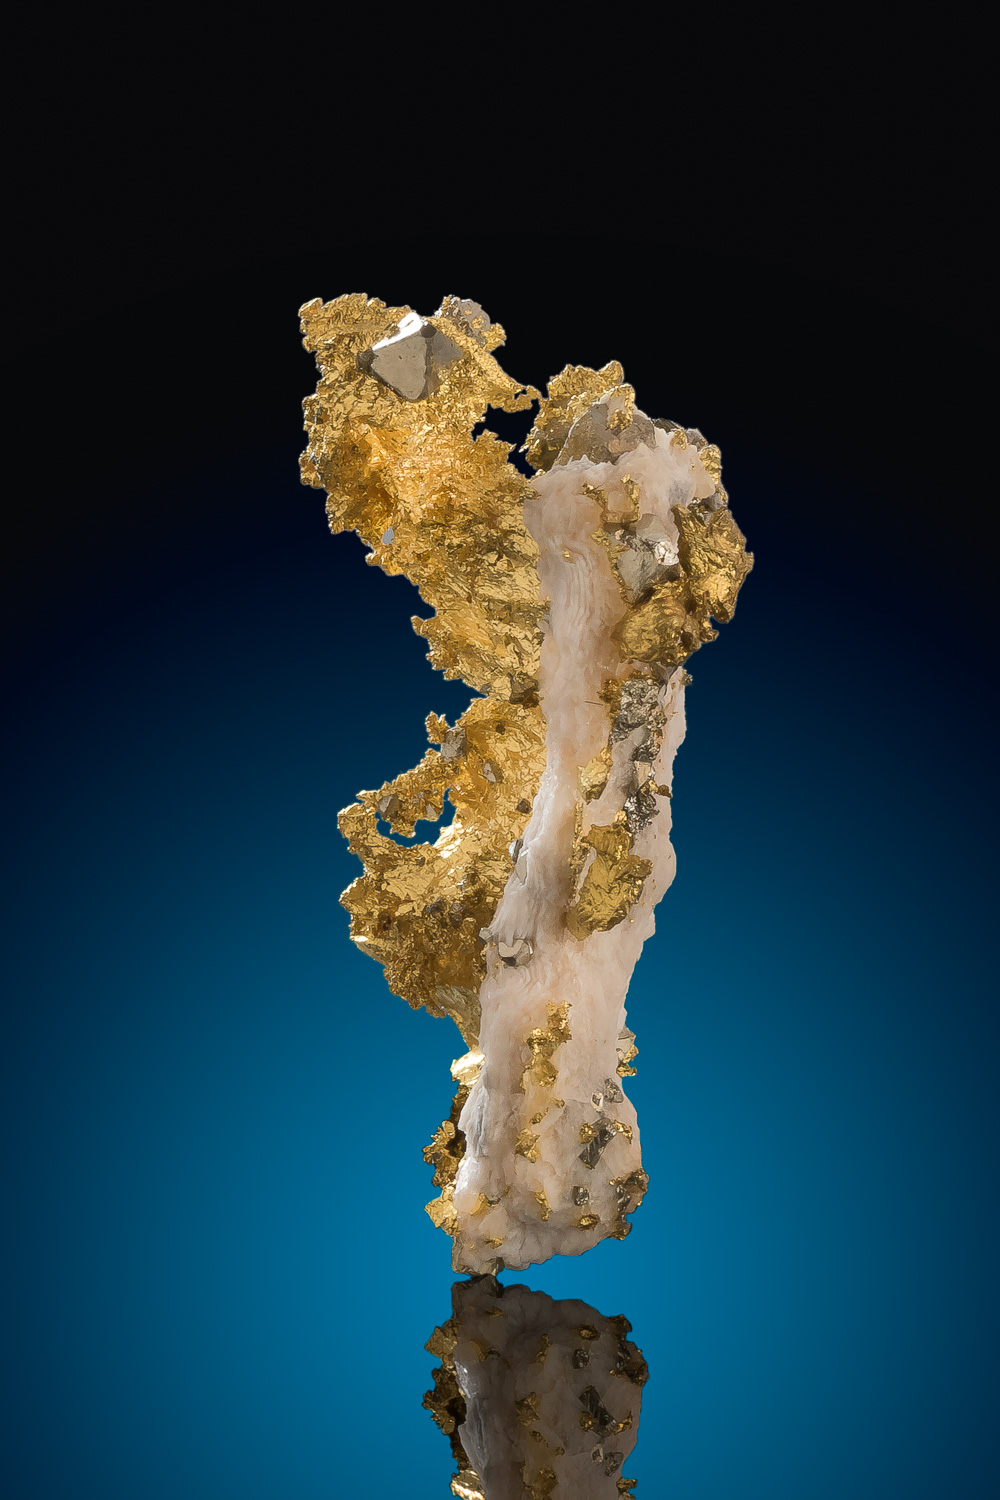 A Rare Specimen - Natural Gold with Pyrite crystals